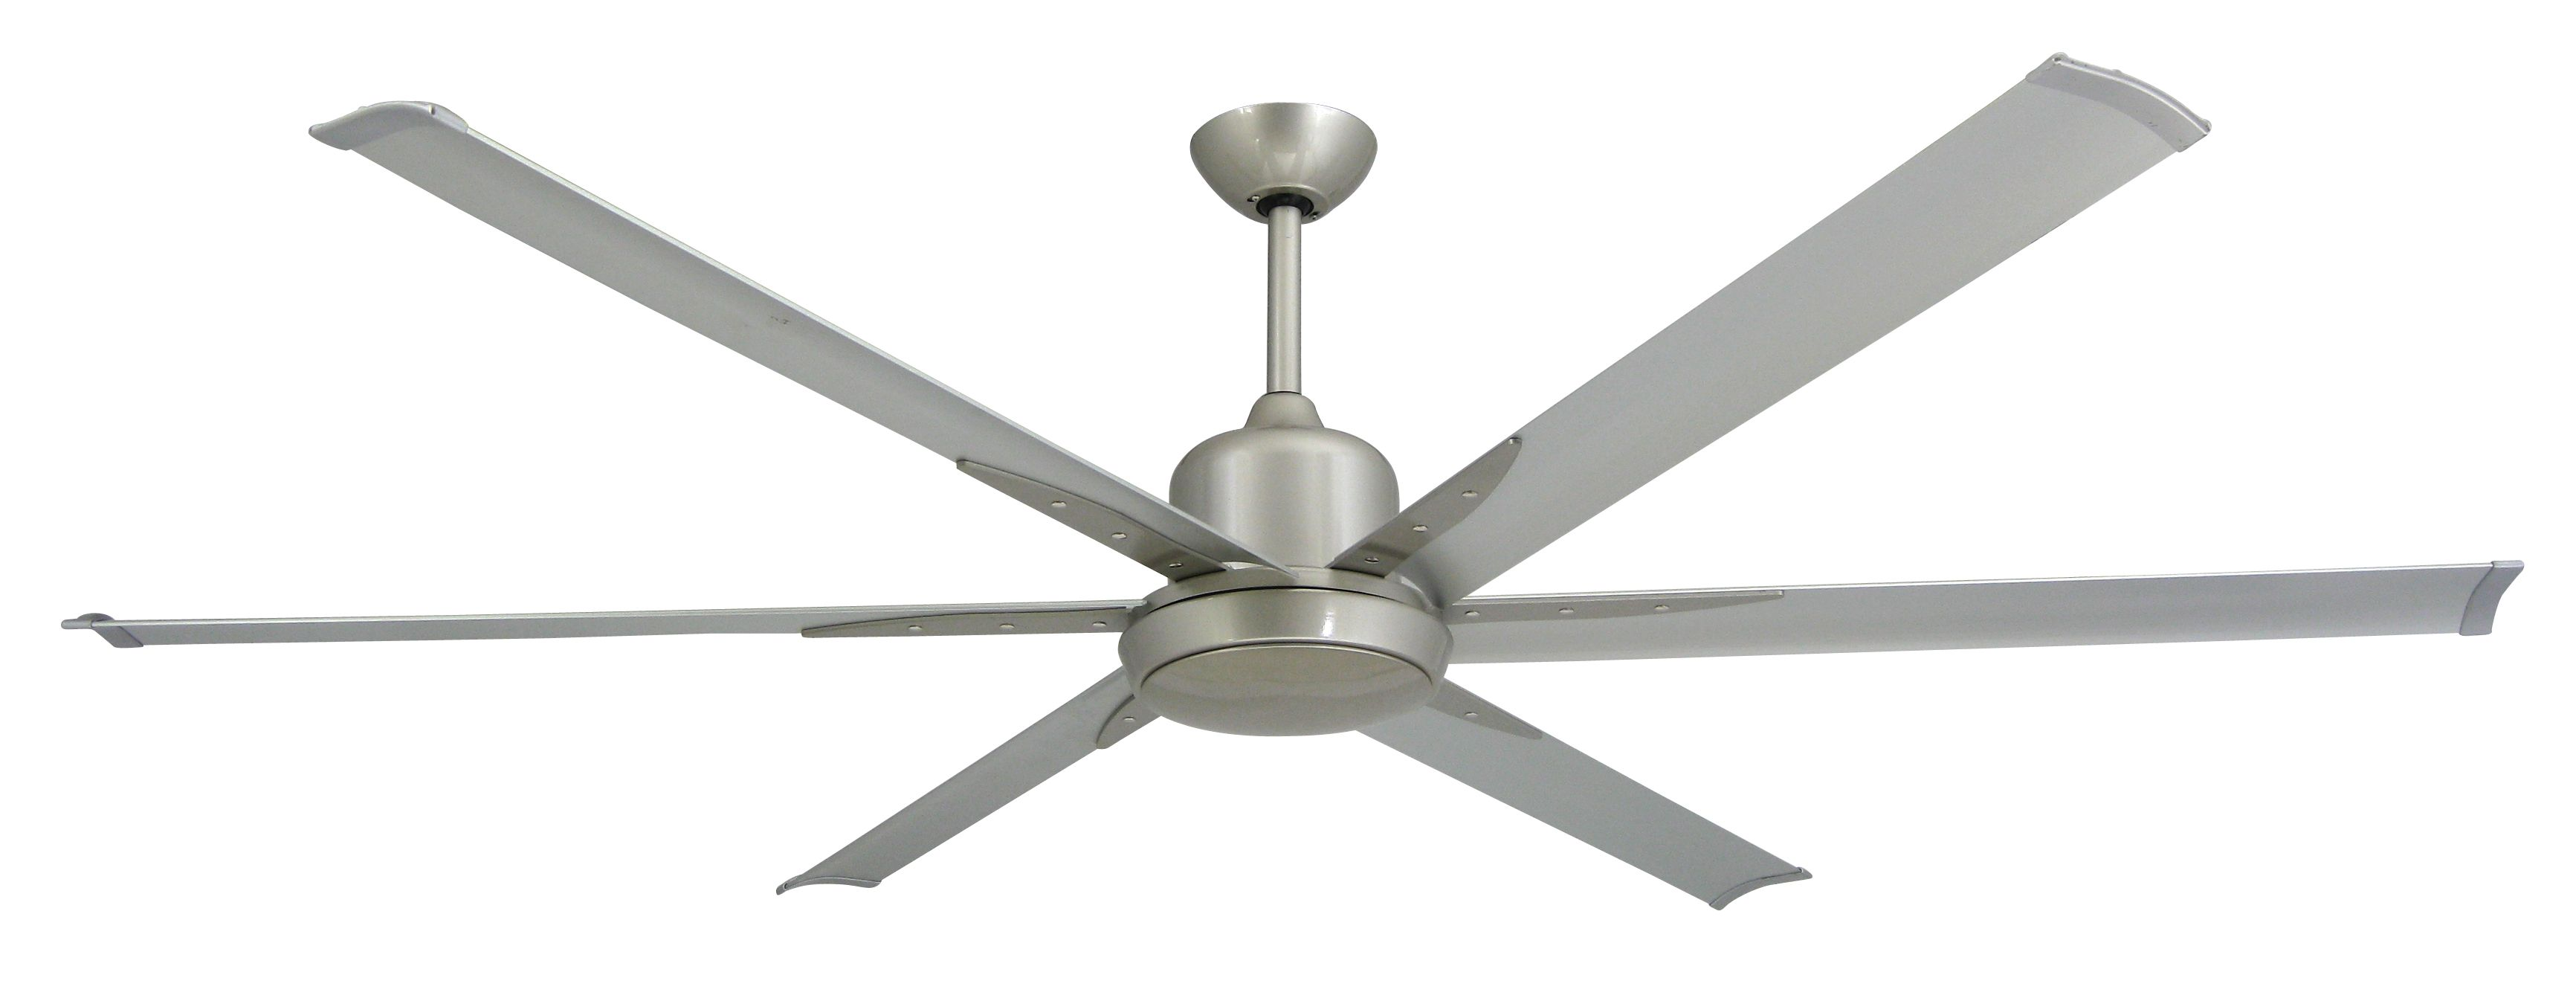 titan fans anodized with hunter fan outdoor indoor ceilings ceiling light industrial volt within ft indooroutdoor